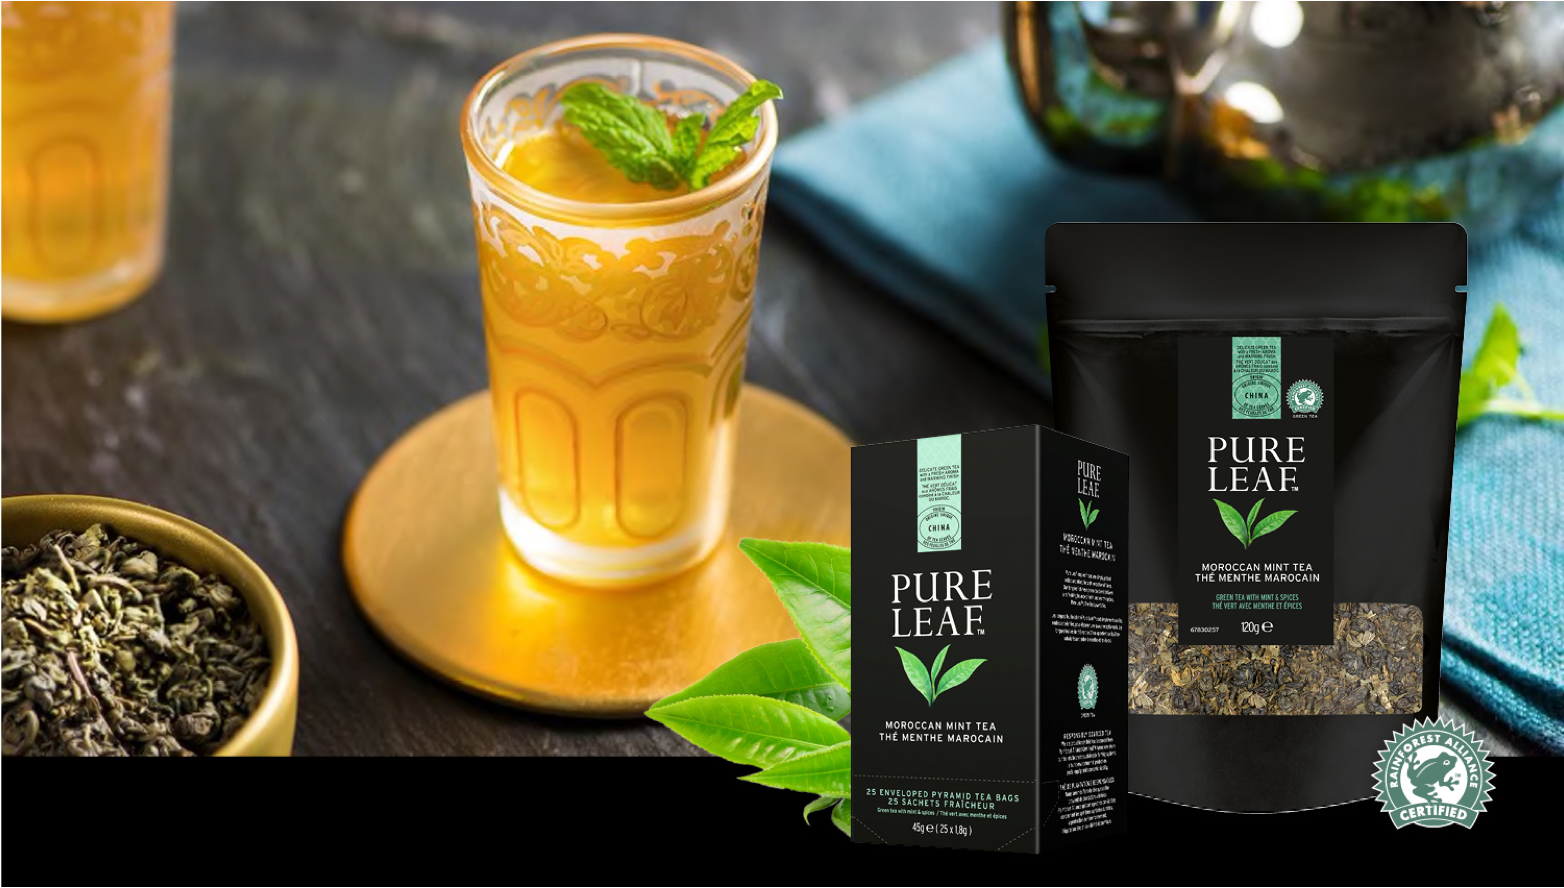 Pure Leaf moroccan mint